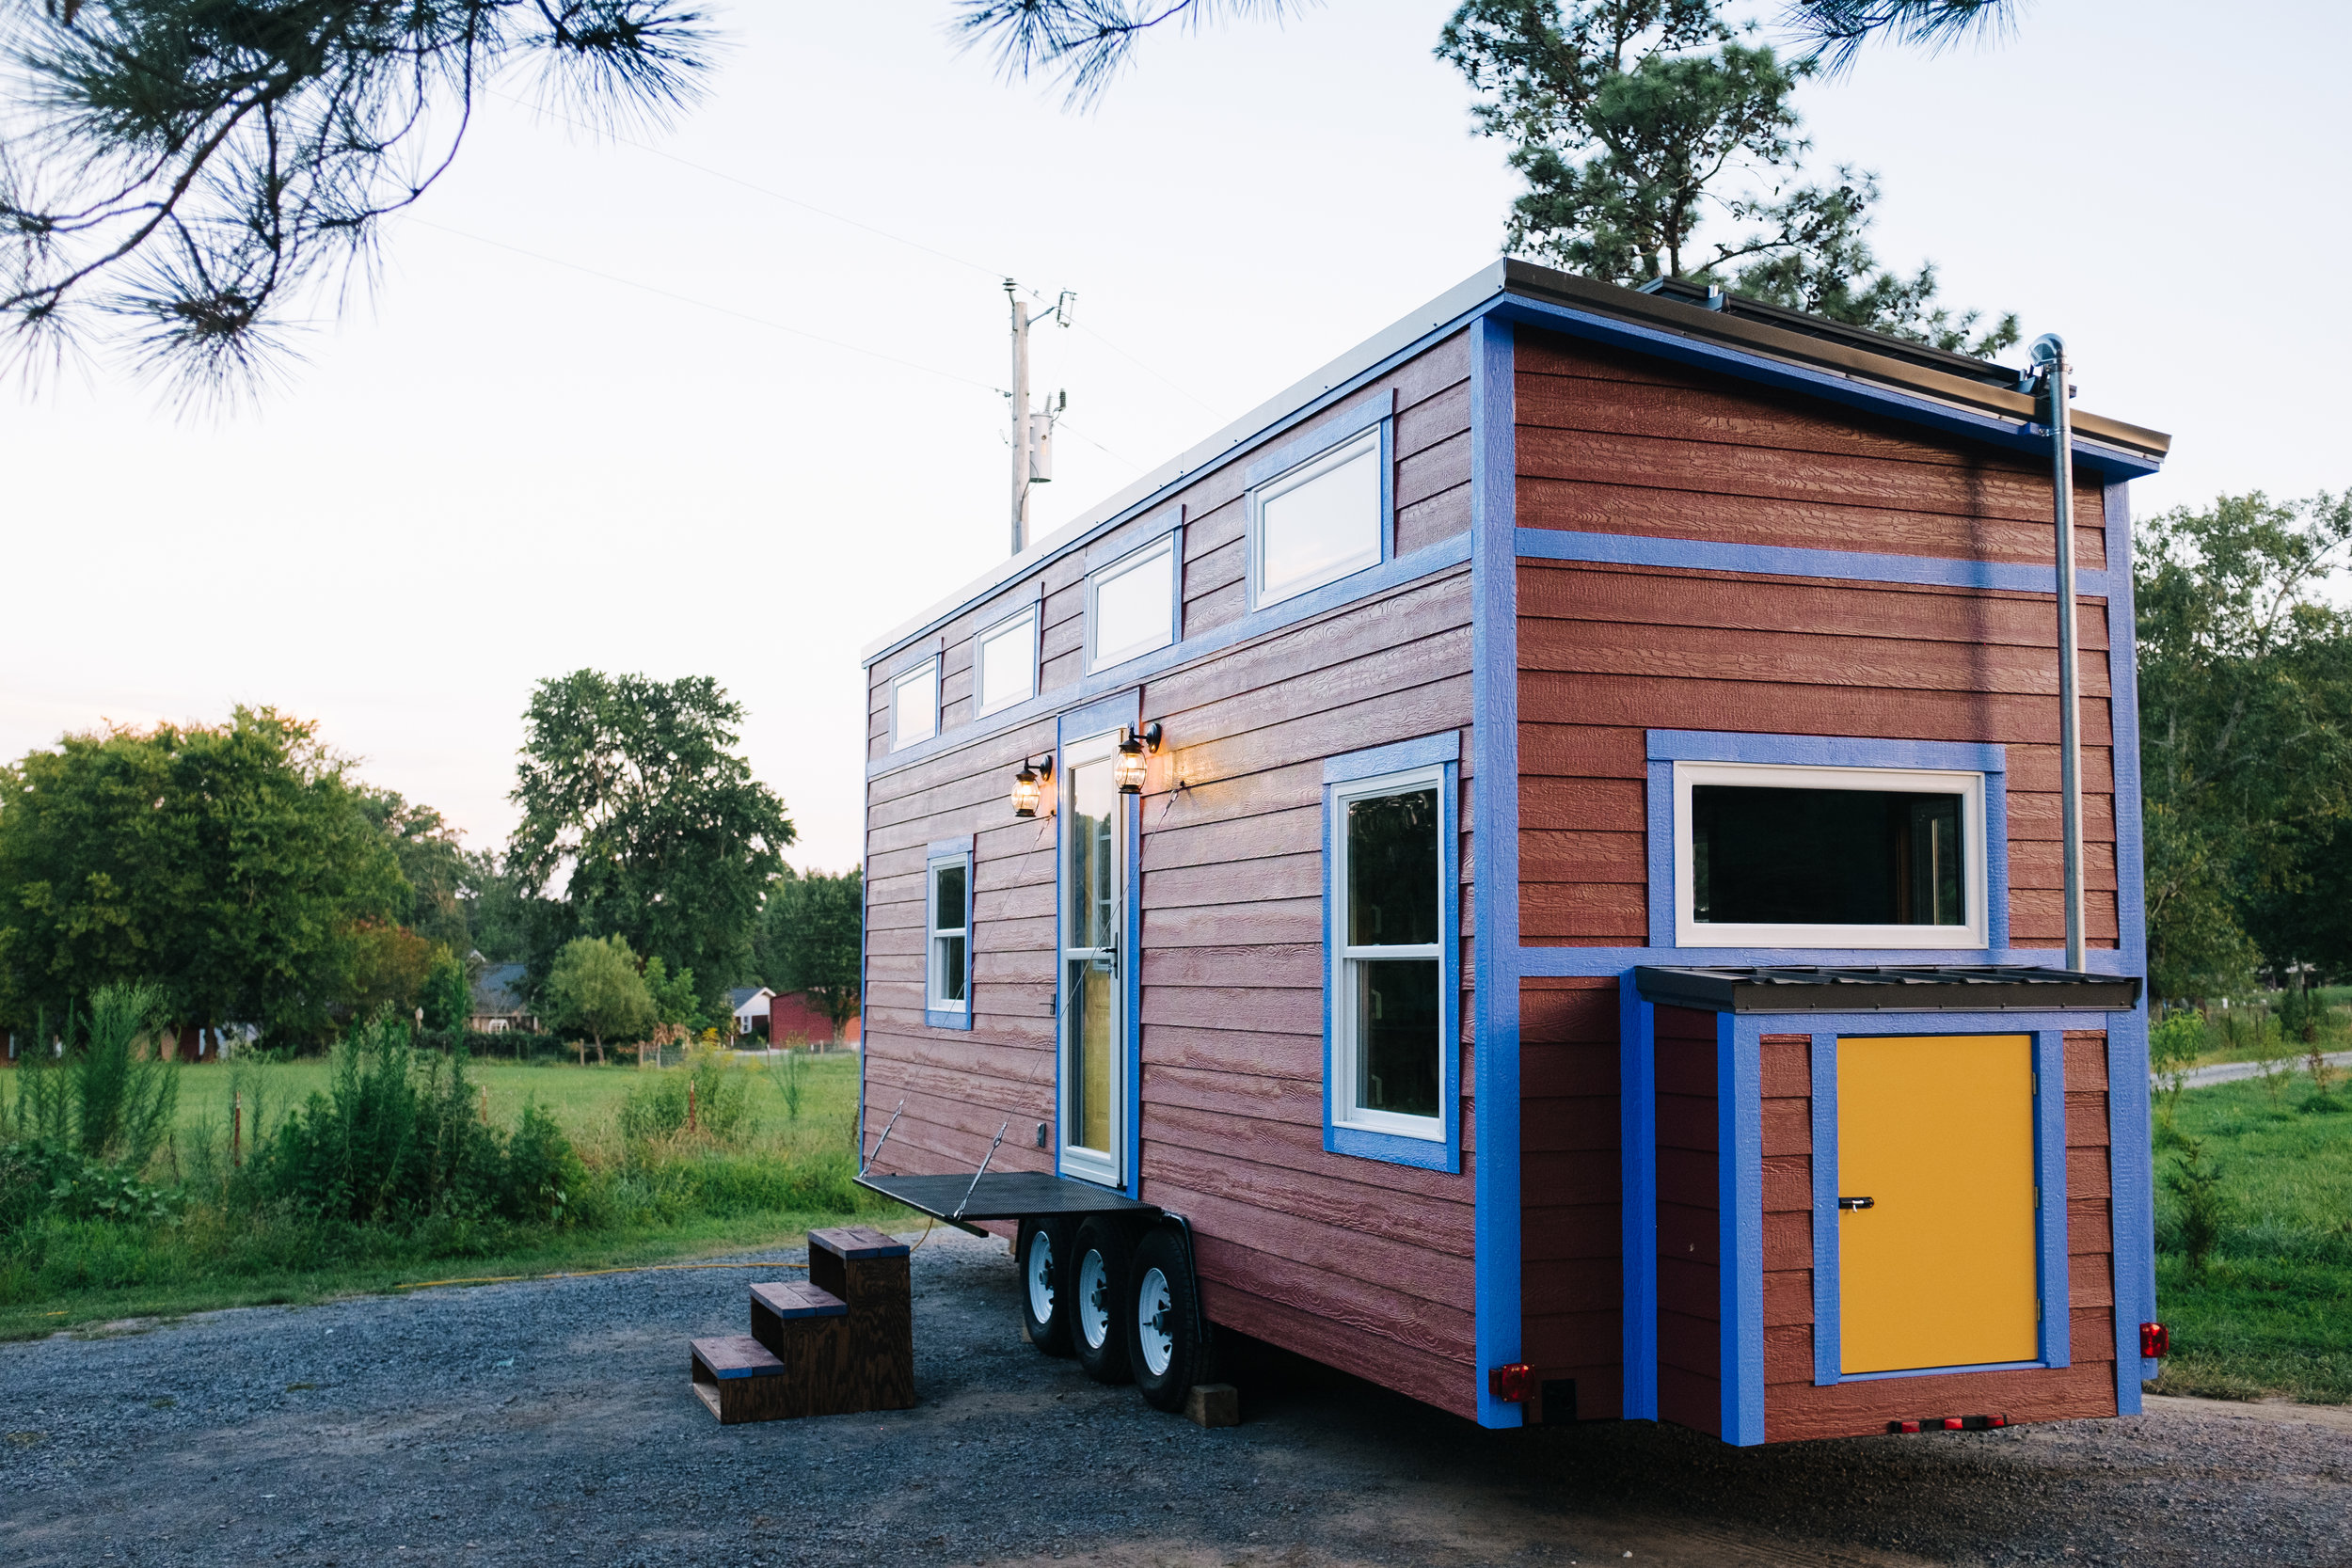 The Big Whimsy by Wind River Tiny Homes - 30' tiny home, off grid solar system, fold down porch, propane utilities, off grid home